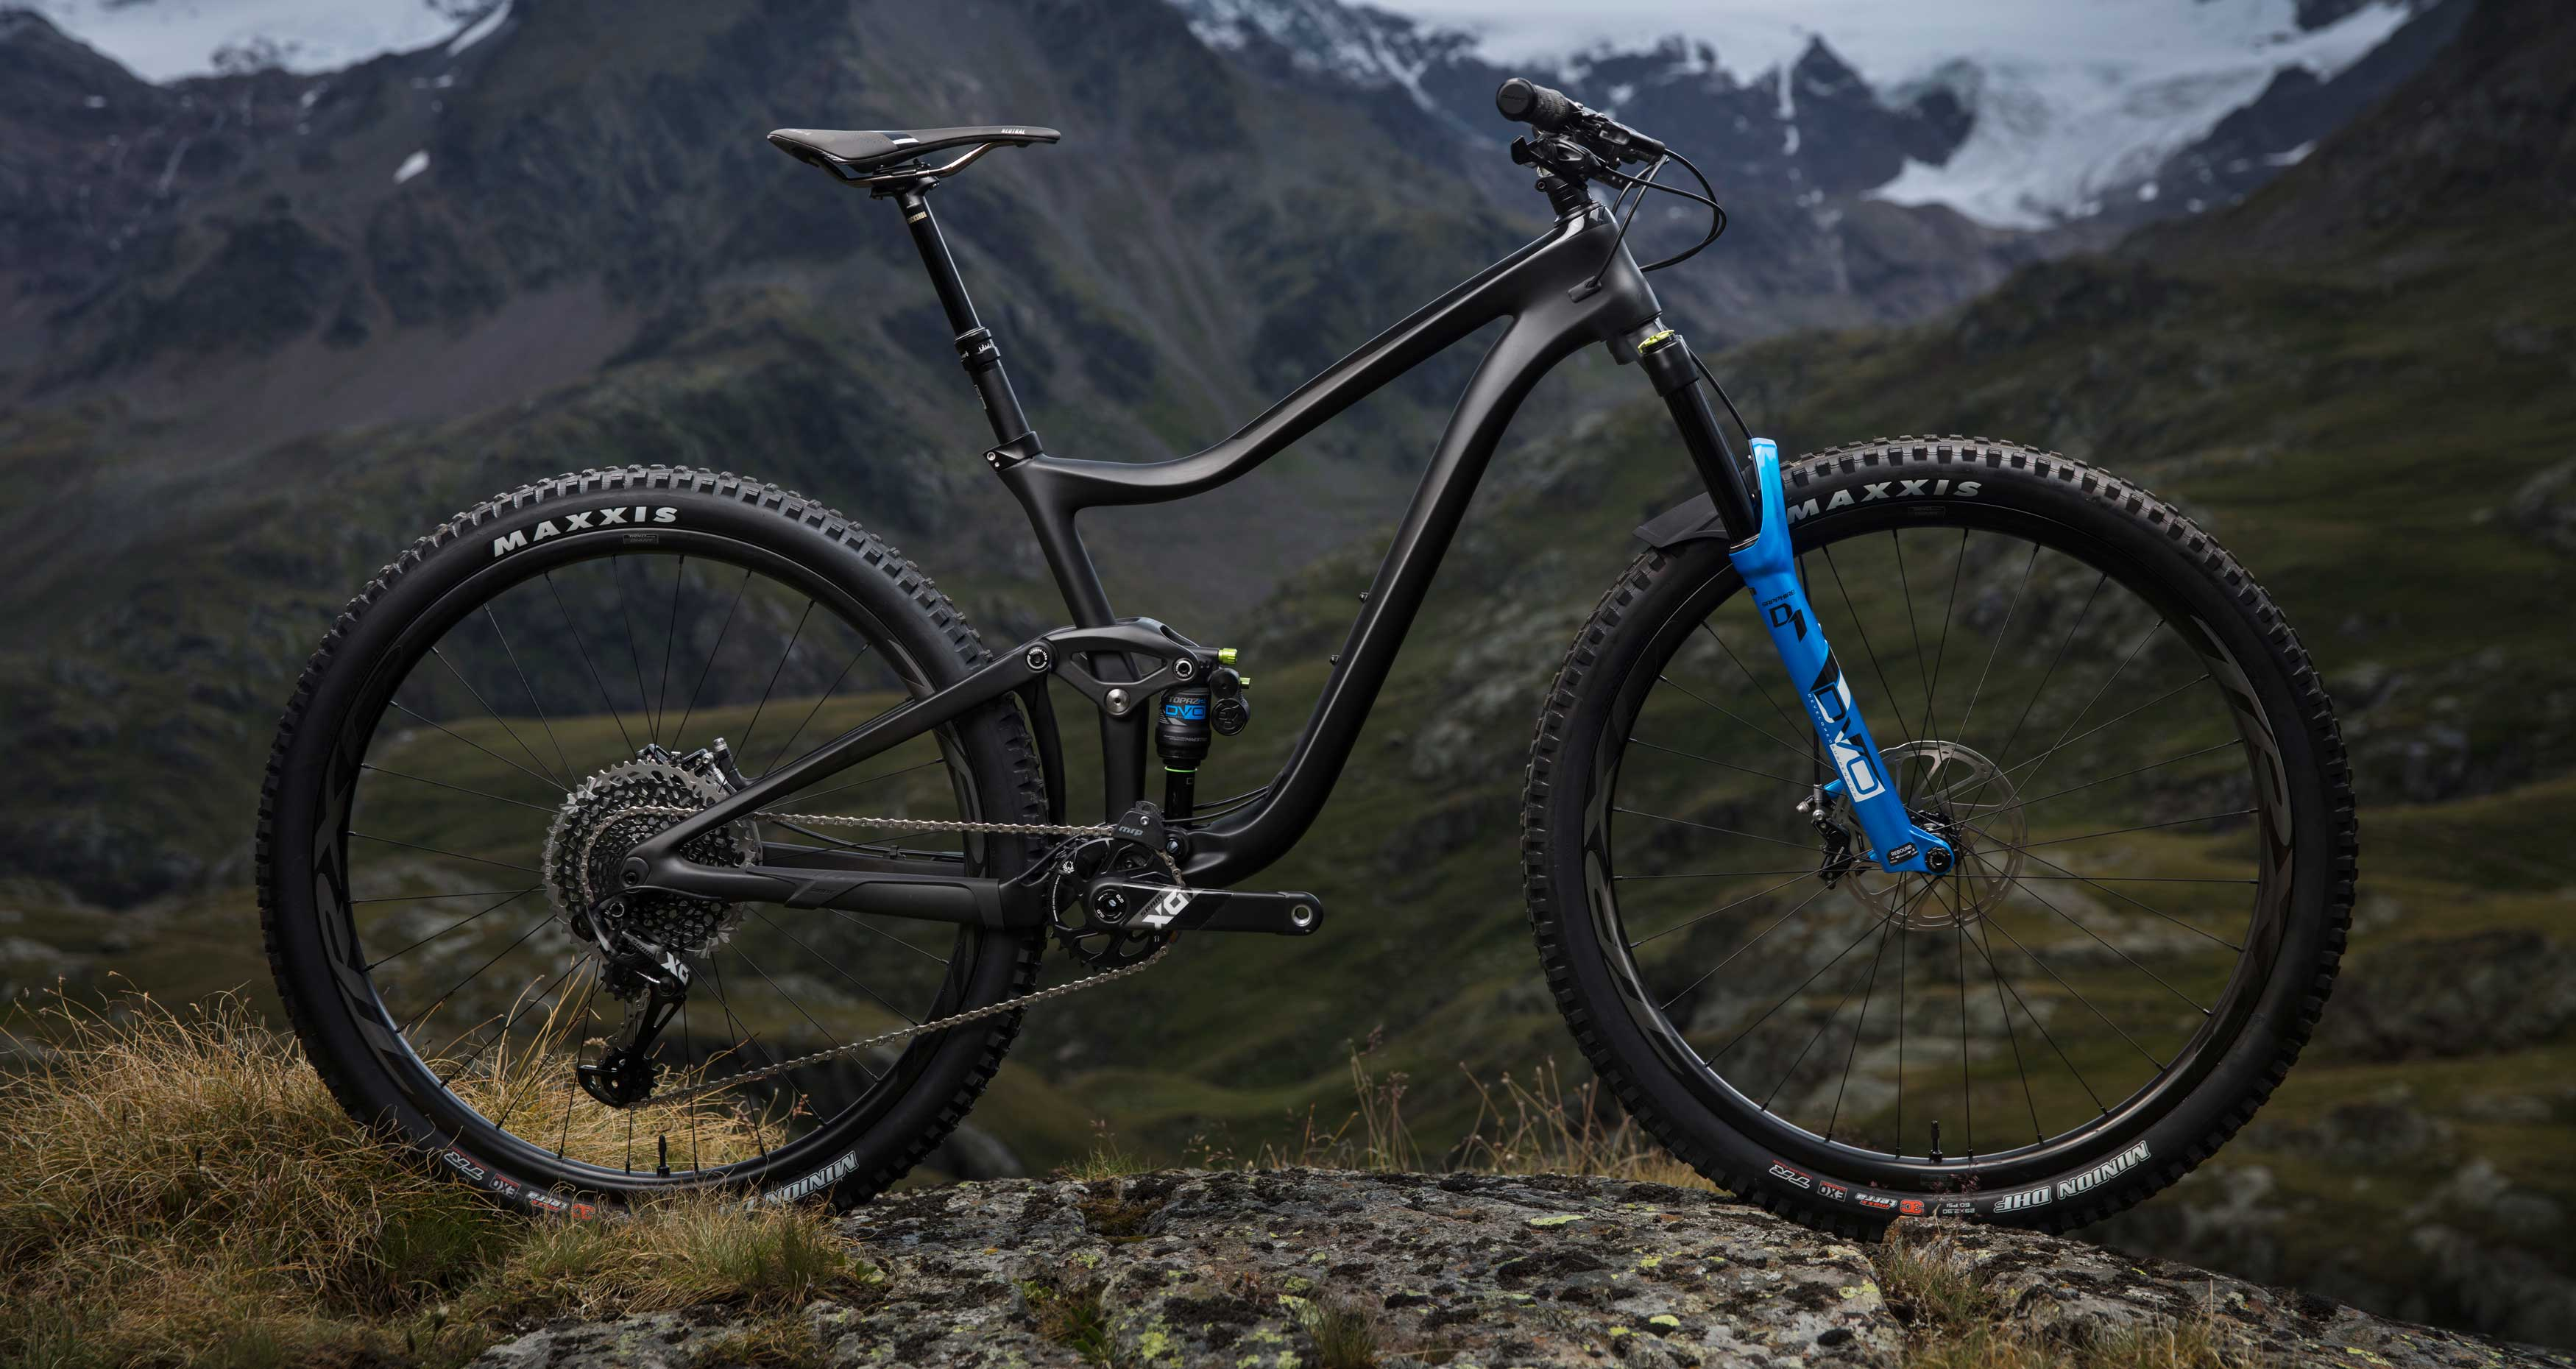 First ride aboard the new Giant Trance 29  An all carbon